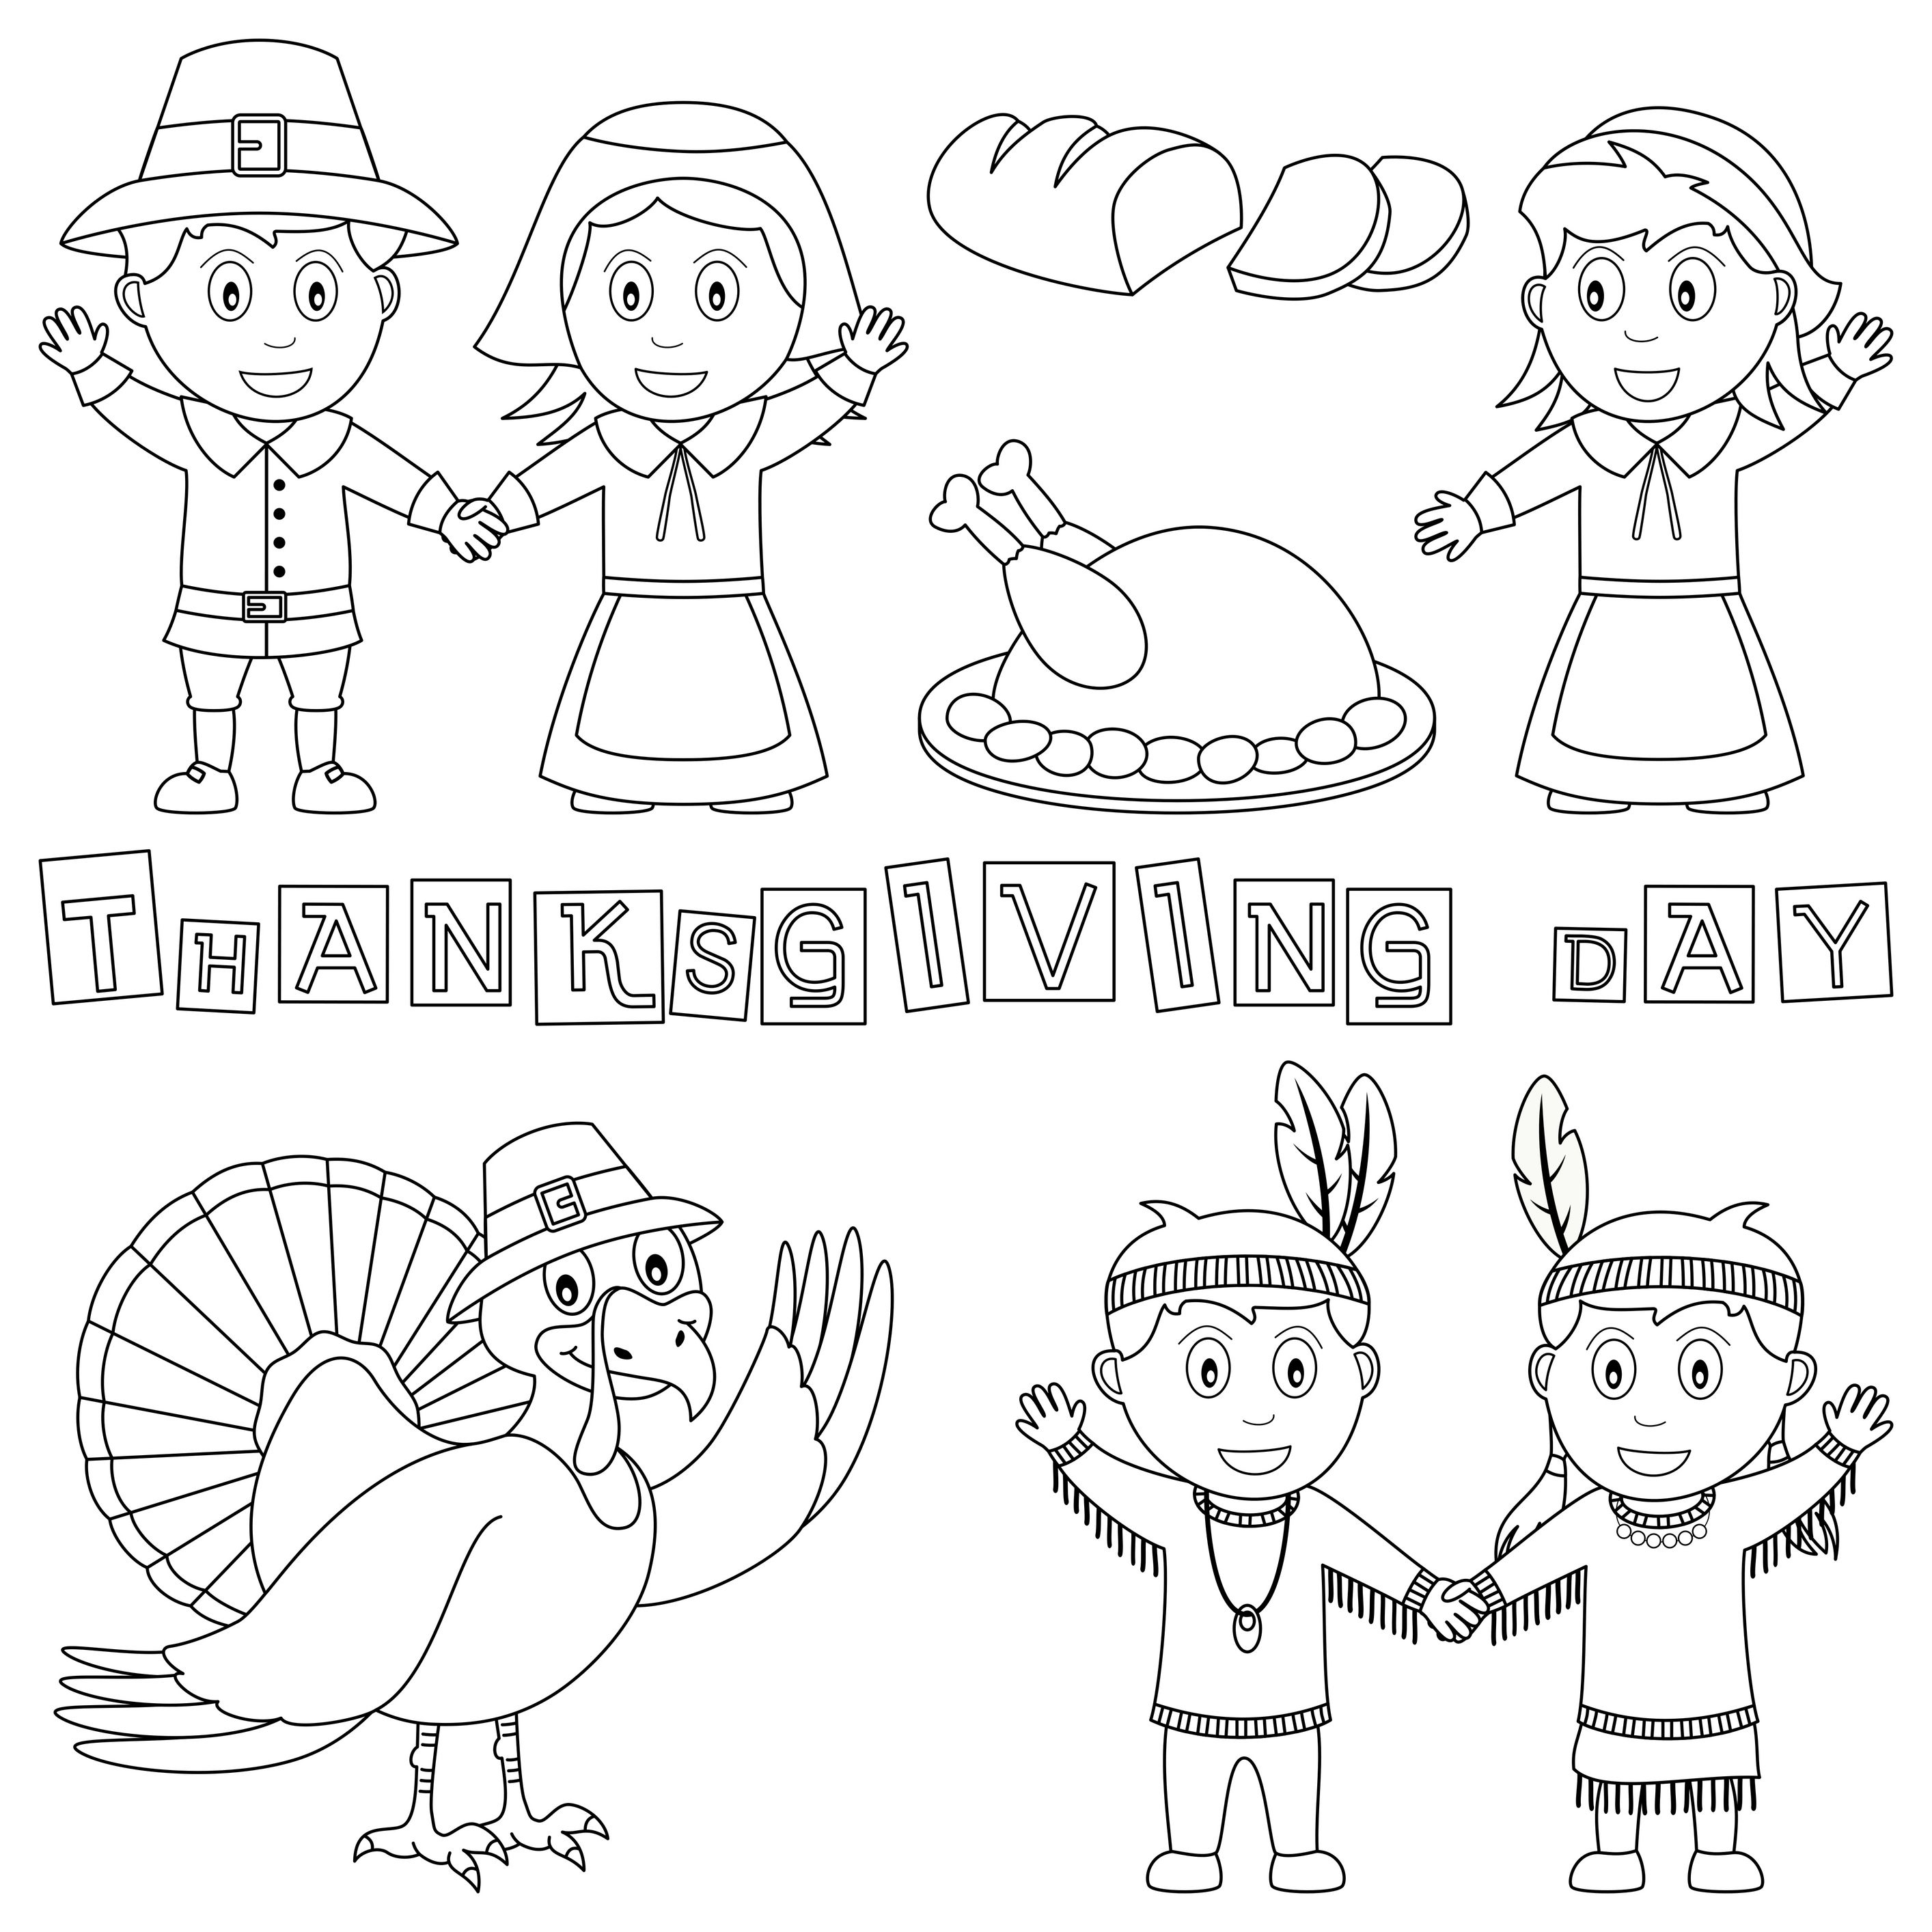 Thanksgiving Day Coloring Page Thanksgiving Coloring Pages